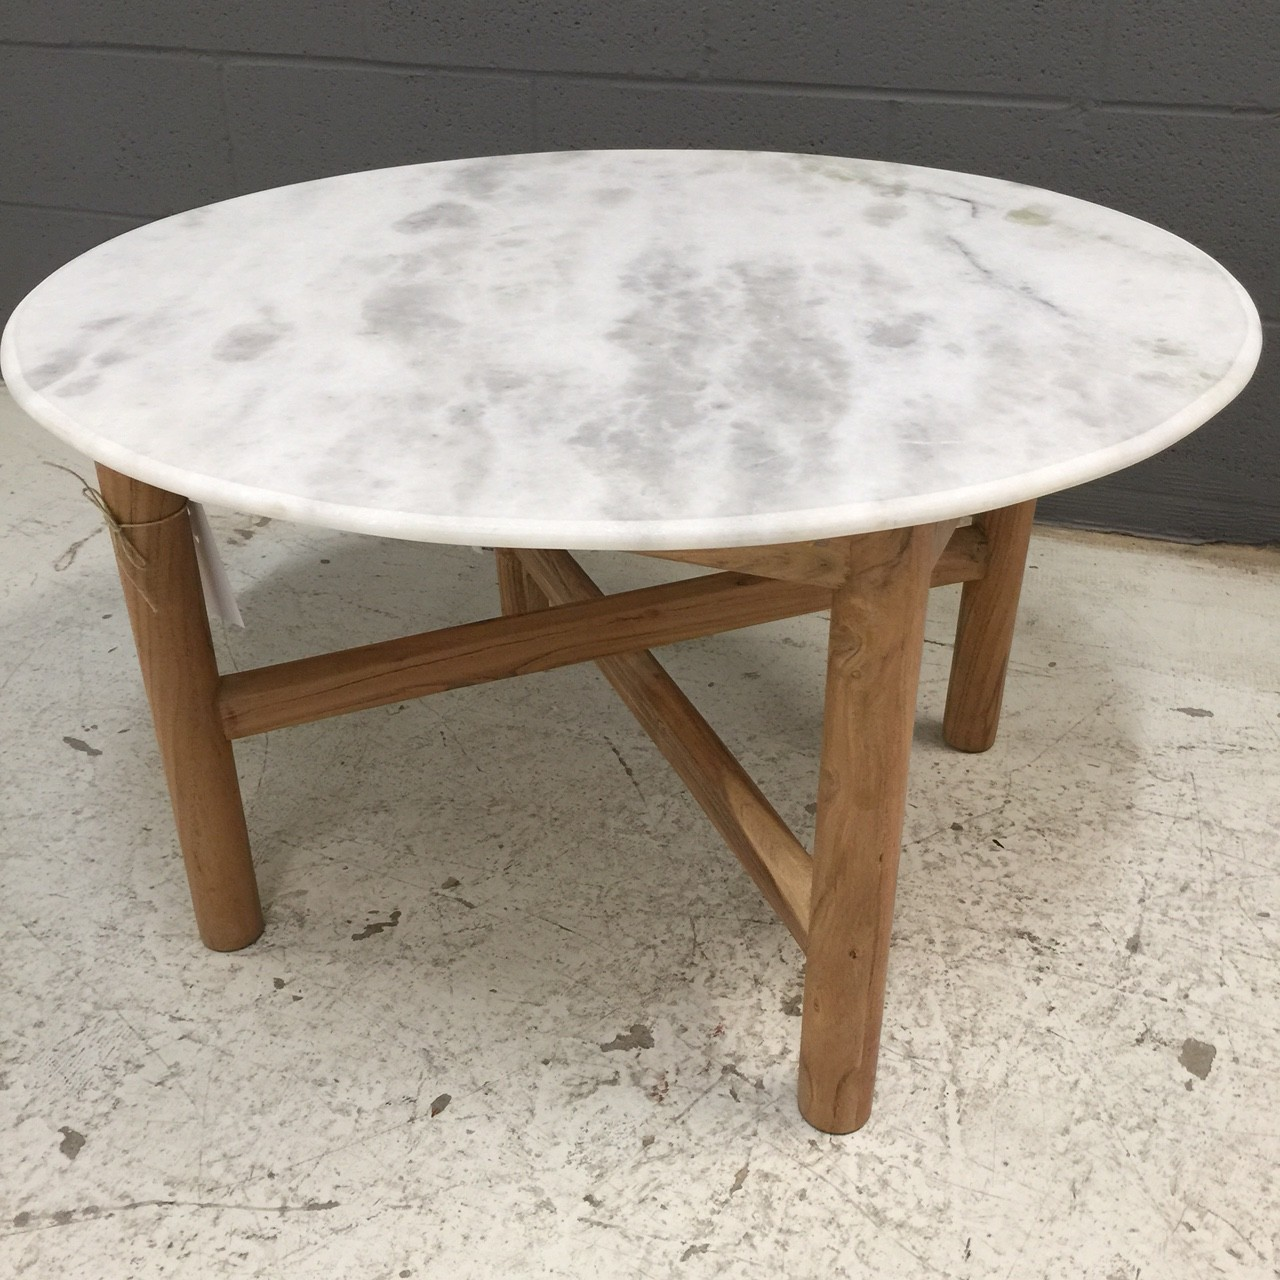 Vue Marble Coffee Table: Round Marble Coffee Table